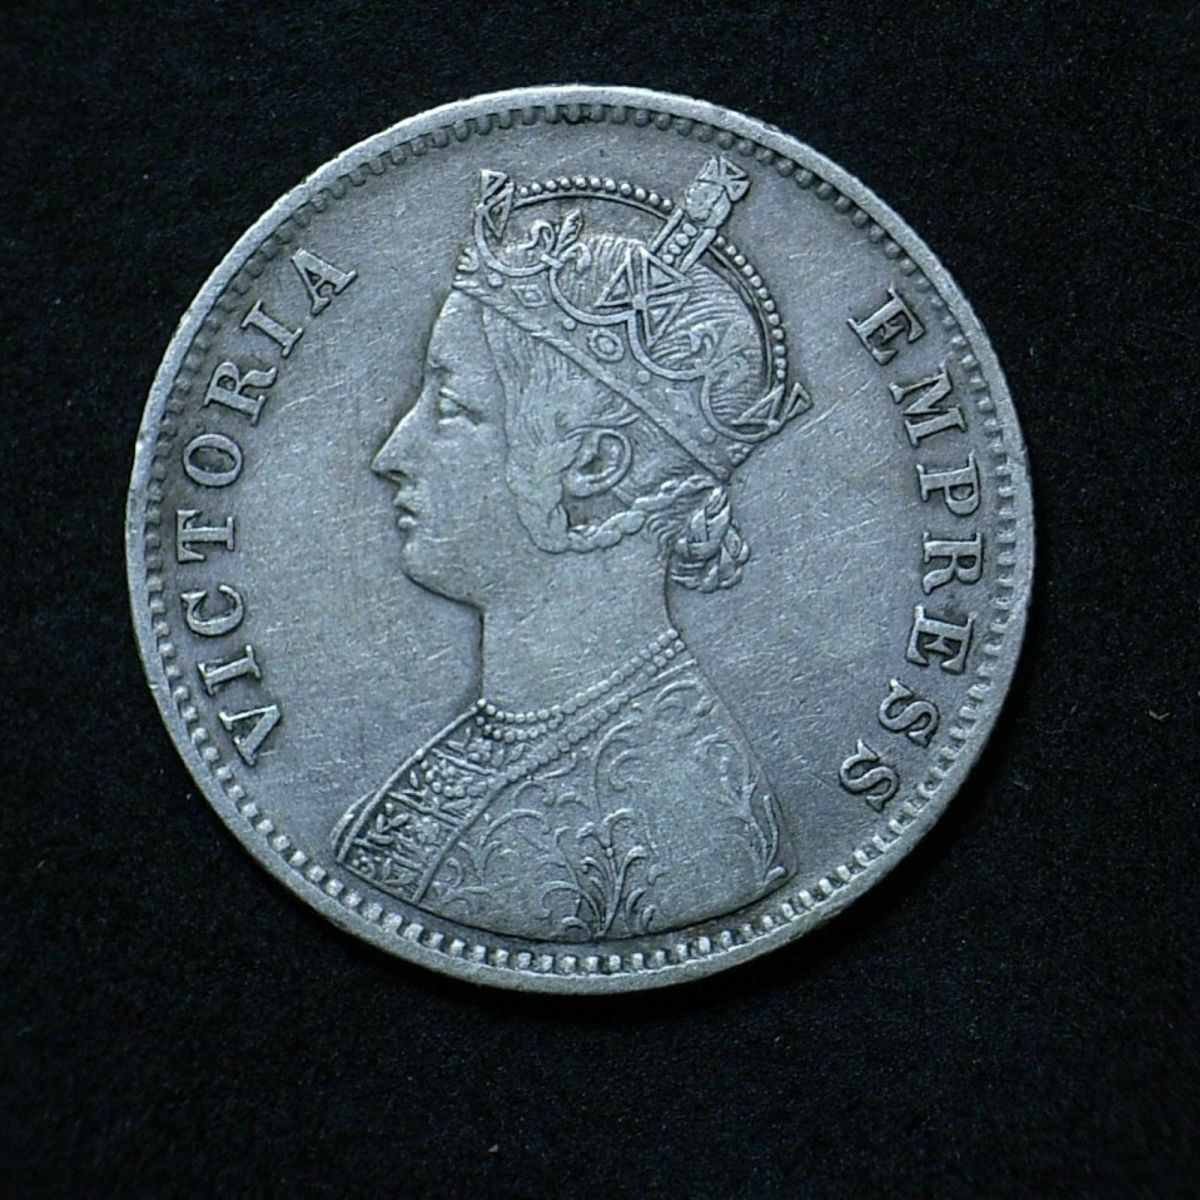 India Rupee 1891 obverse showing the coin's overall appearance